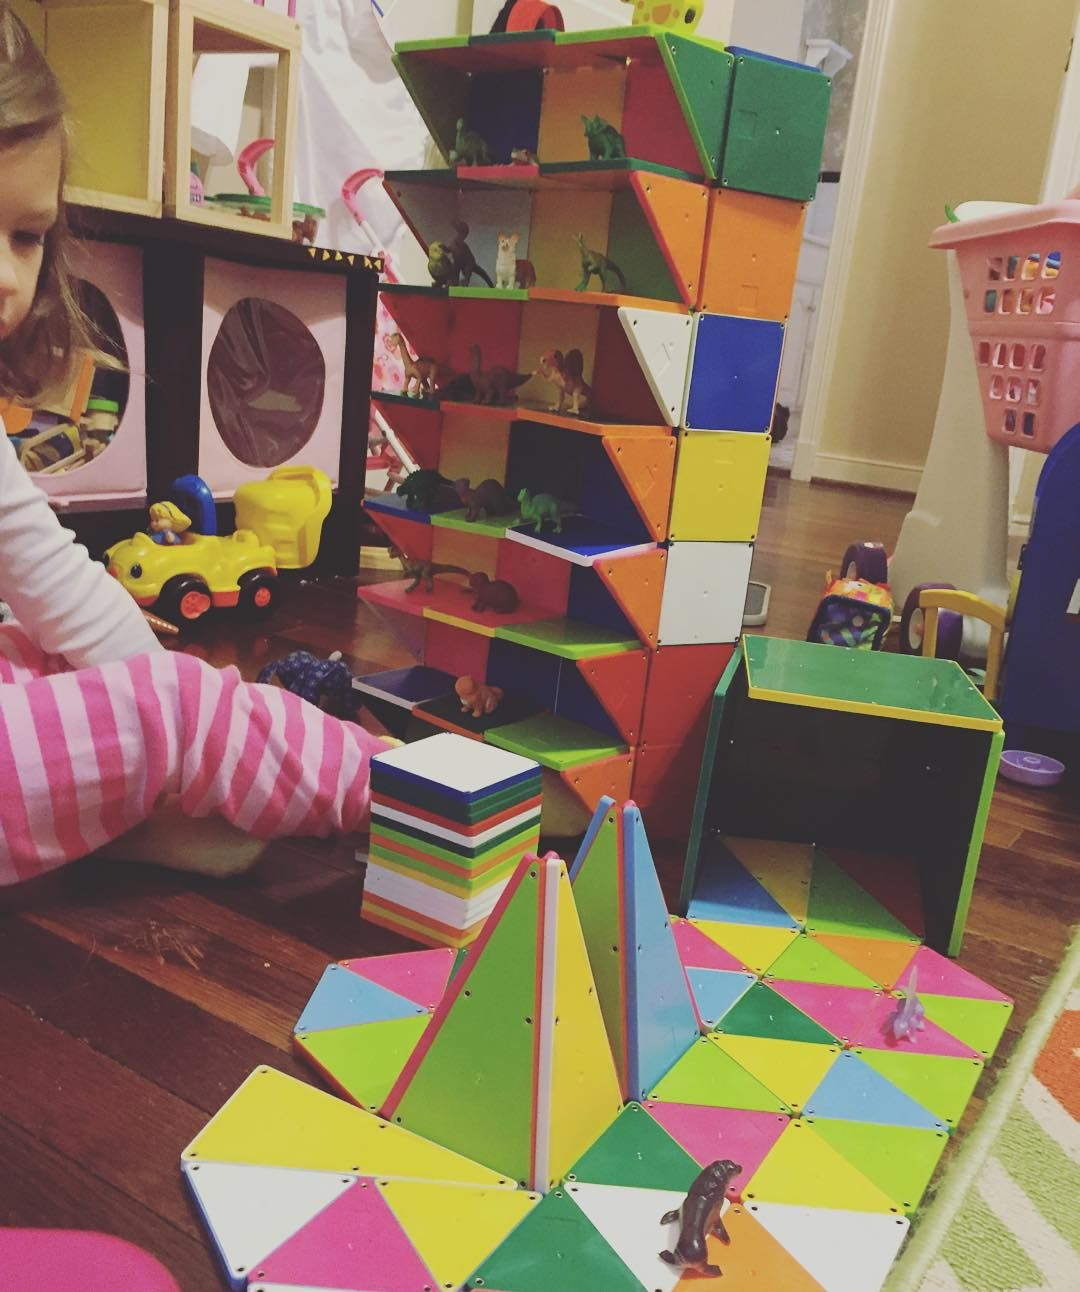 We made a Magna-Tiles apartment building, complete with a garden- for her little animal figures.